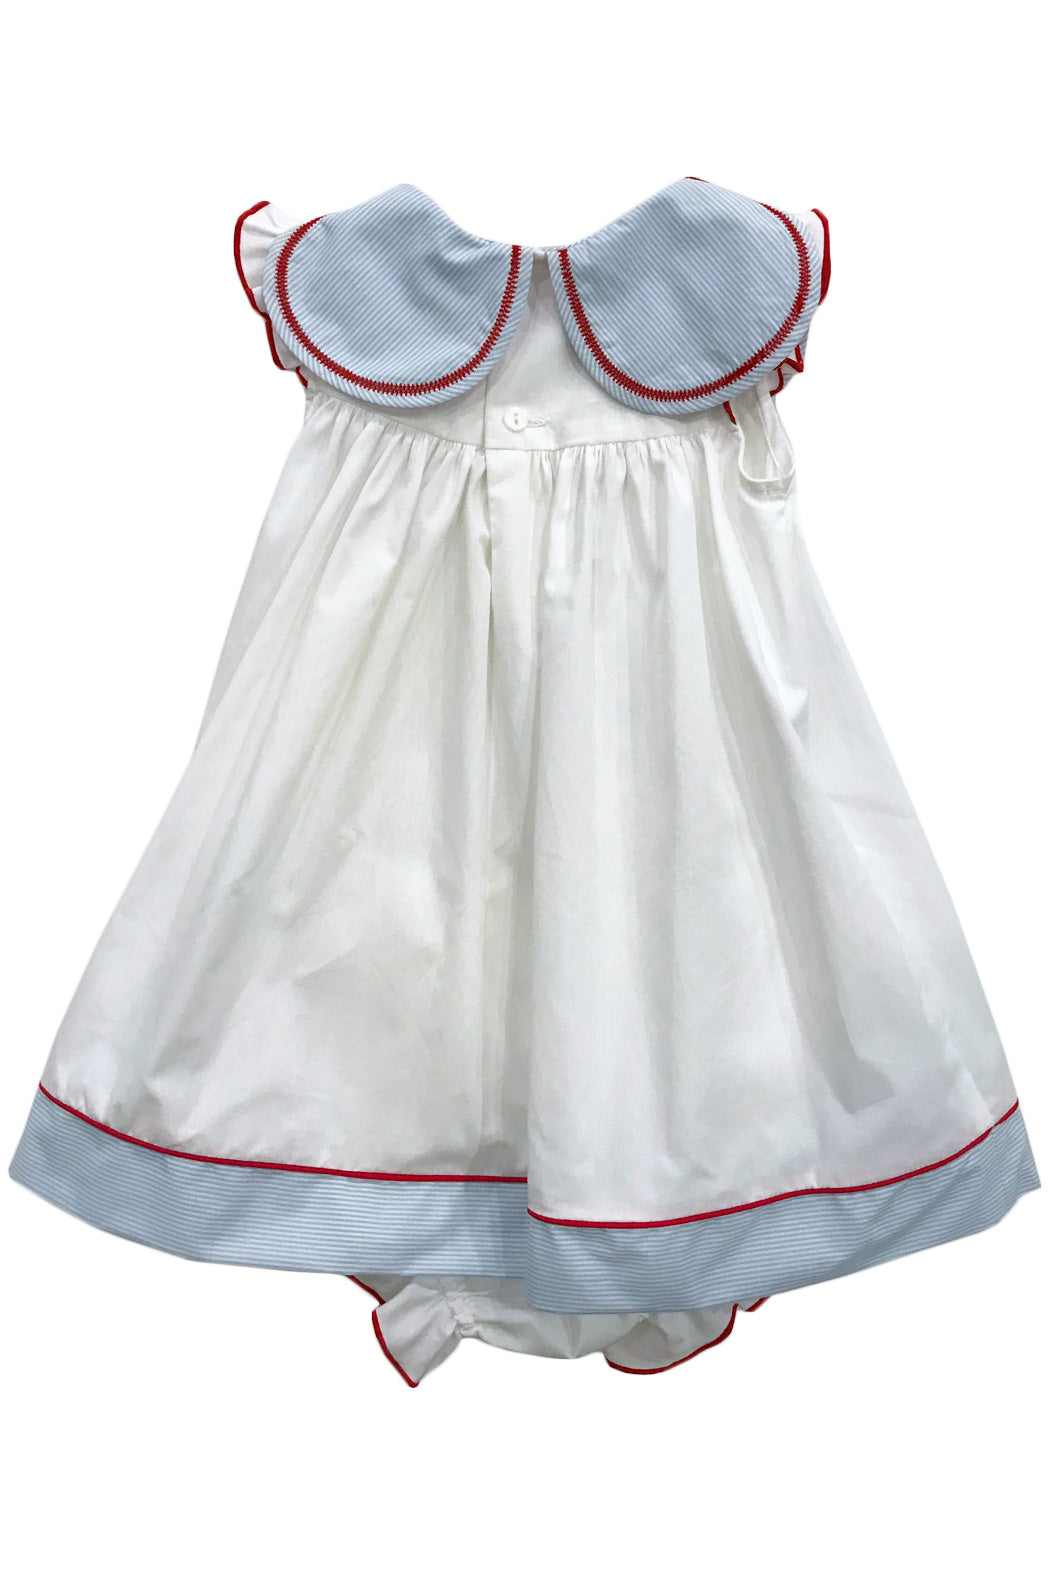 Sophie & Lucas - Blue Stripe Petal Collar Dress w/ Bloomers - kkgivingtree - K&K's Giving Tree